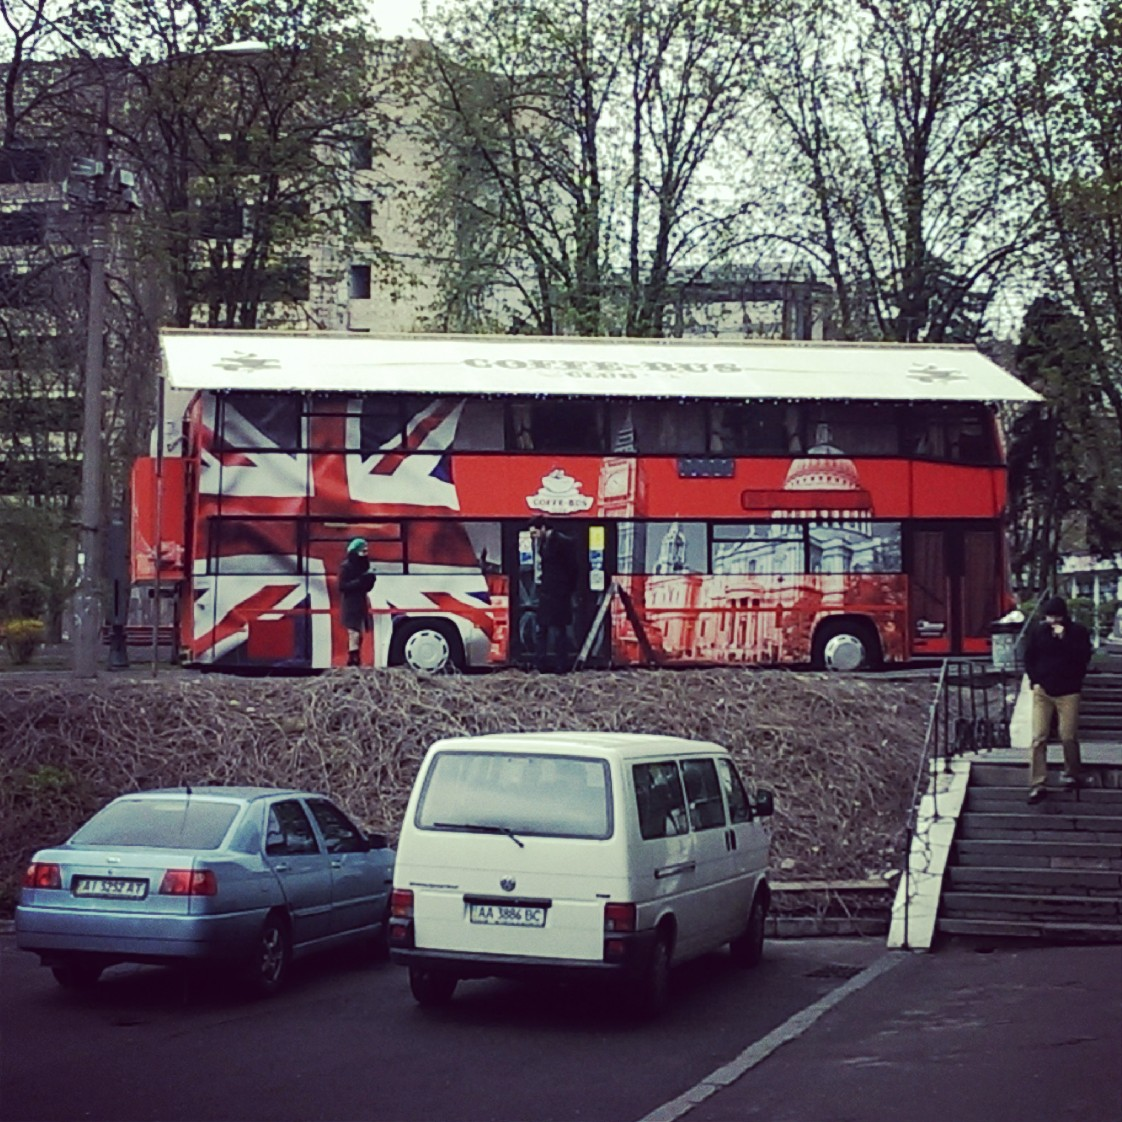 ...and now look!! (and I know we're famous for Red buses, but it should be a TEA bus). Where will is end??